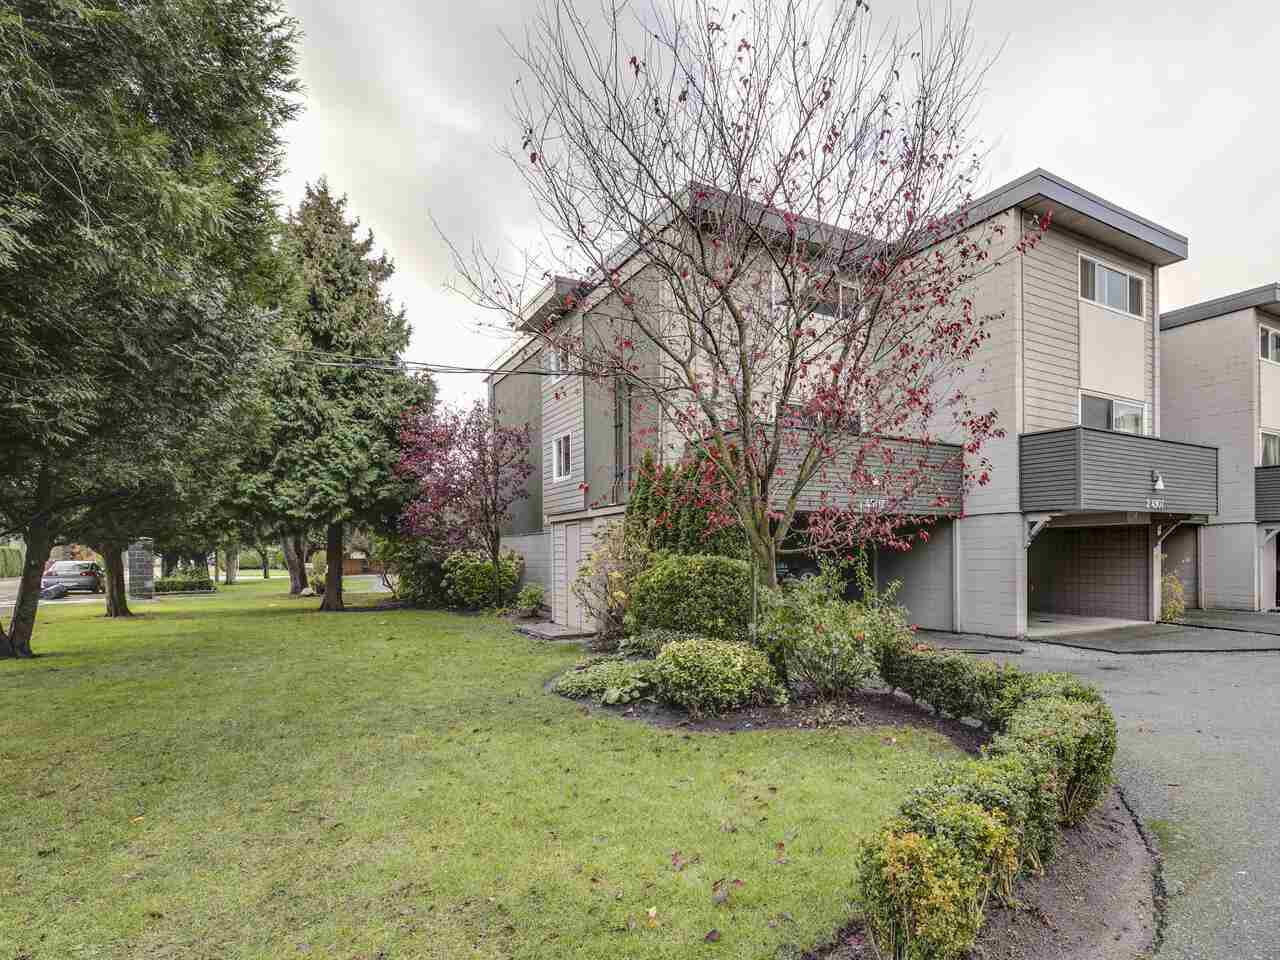 """Main Photo: 2 4907 57A Street in Delta: Hawthorne Townhouse for sale in """"HAWTHRONE"""" (Ladner)  : MLS®# R2525615"""